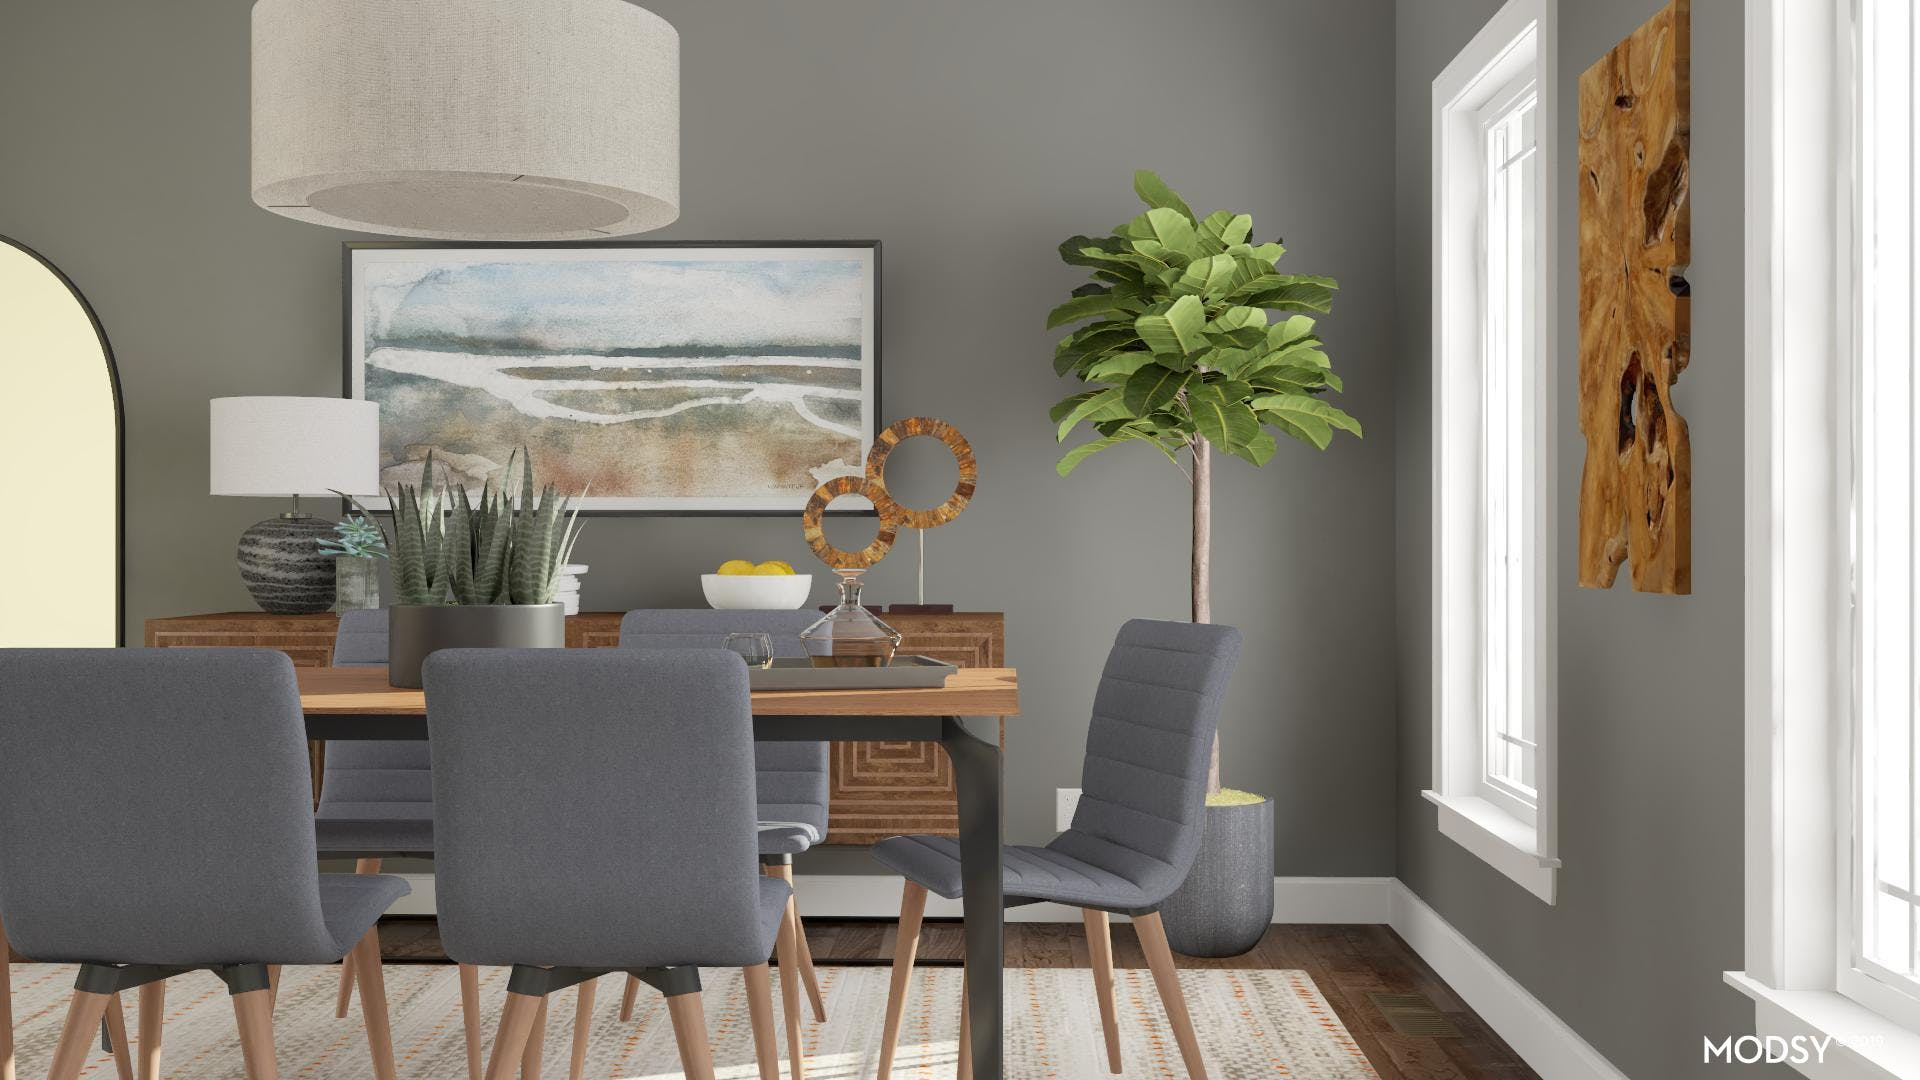 Moody Dining Room Layout Tips